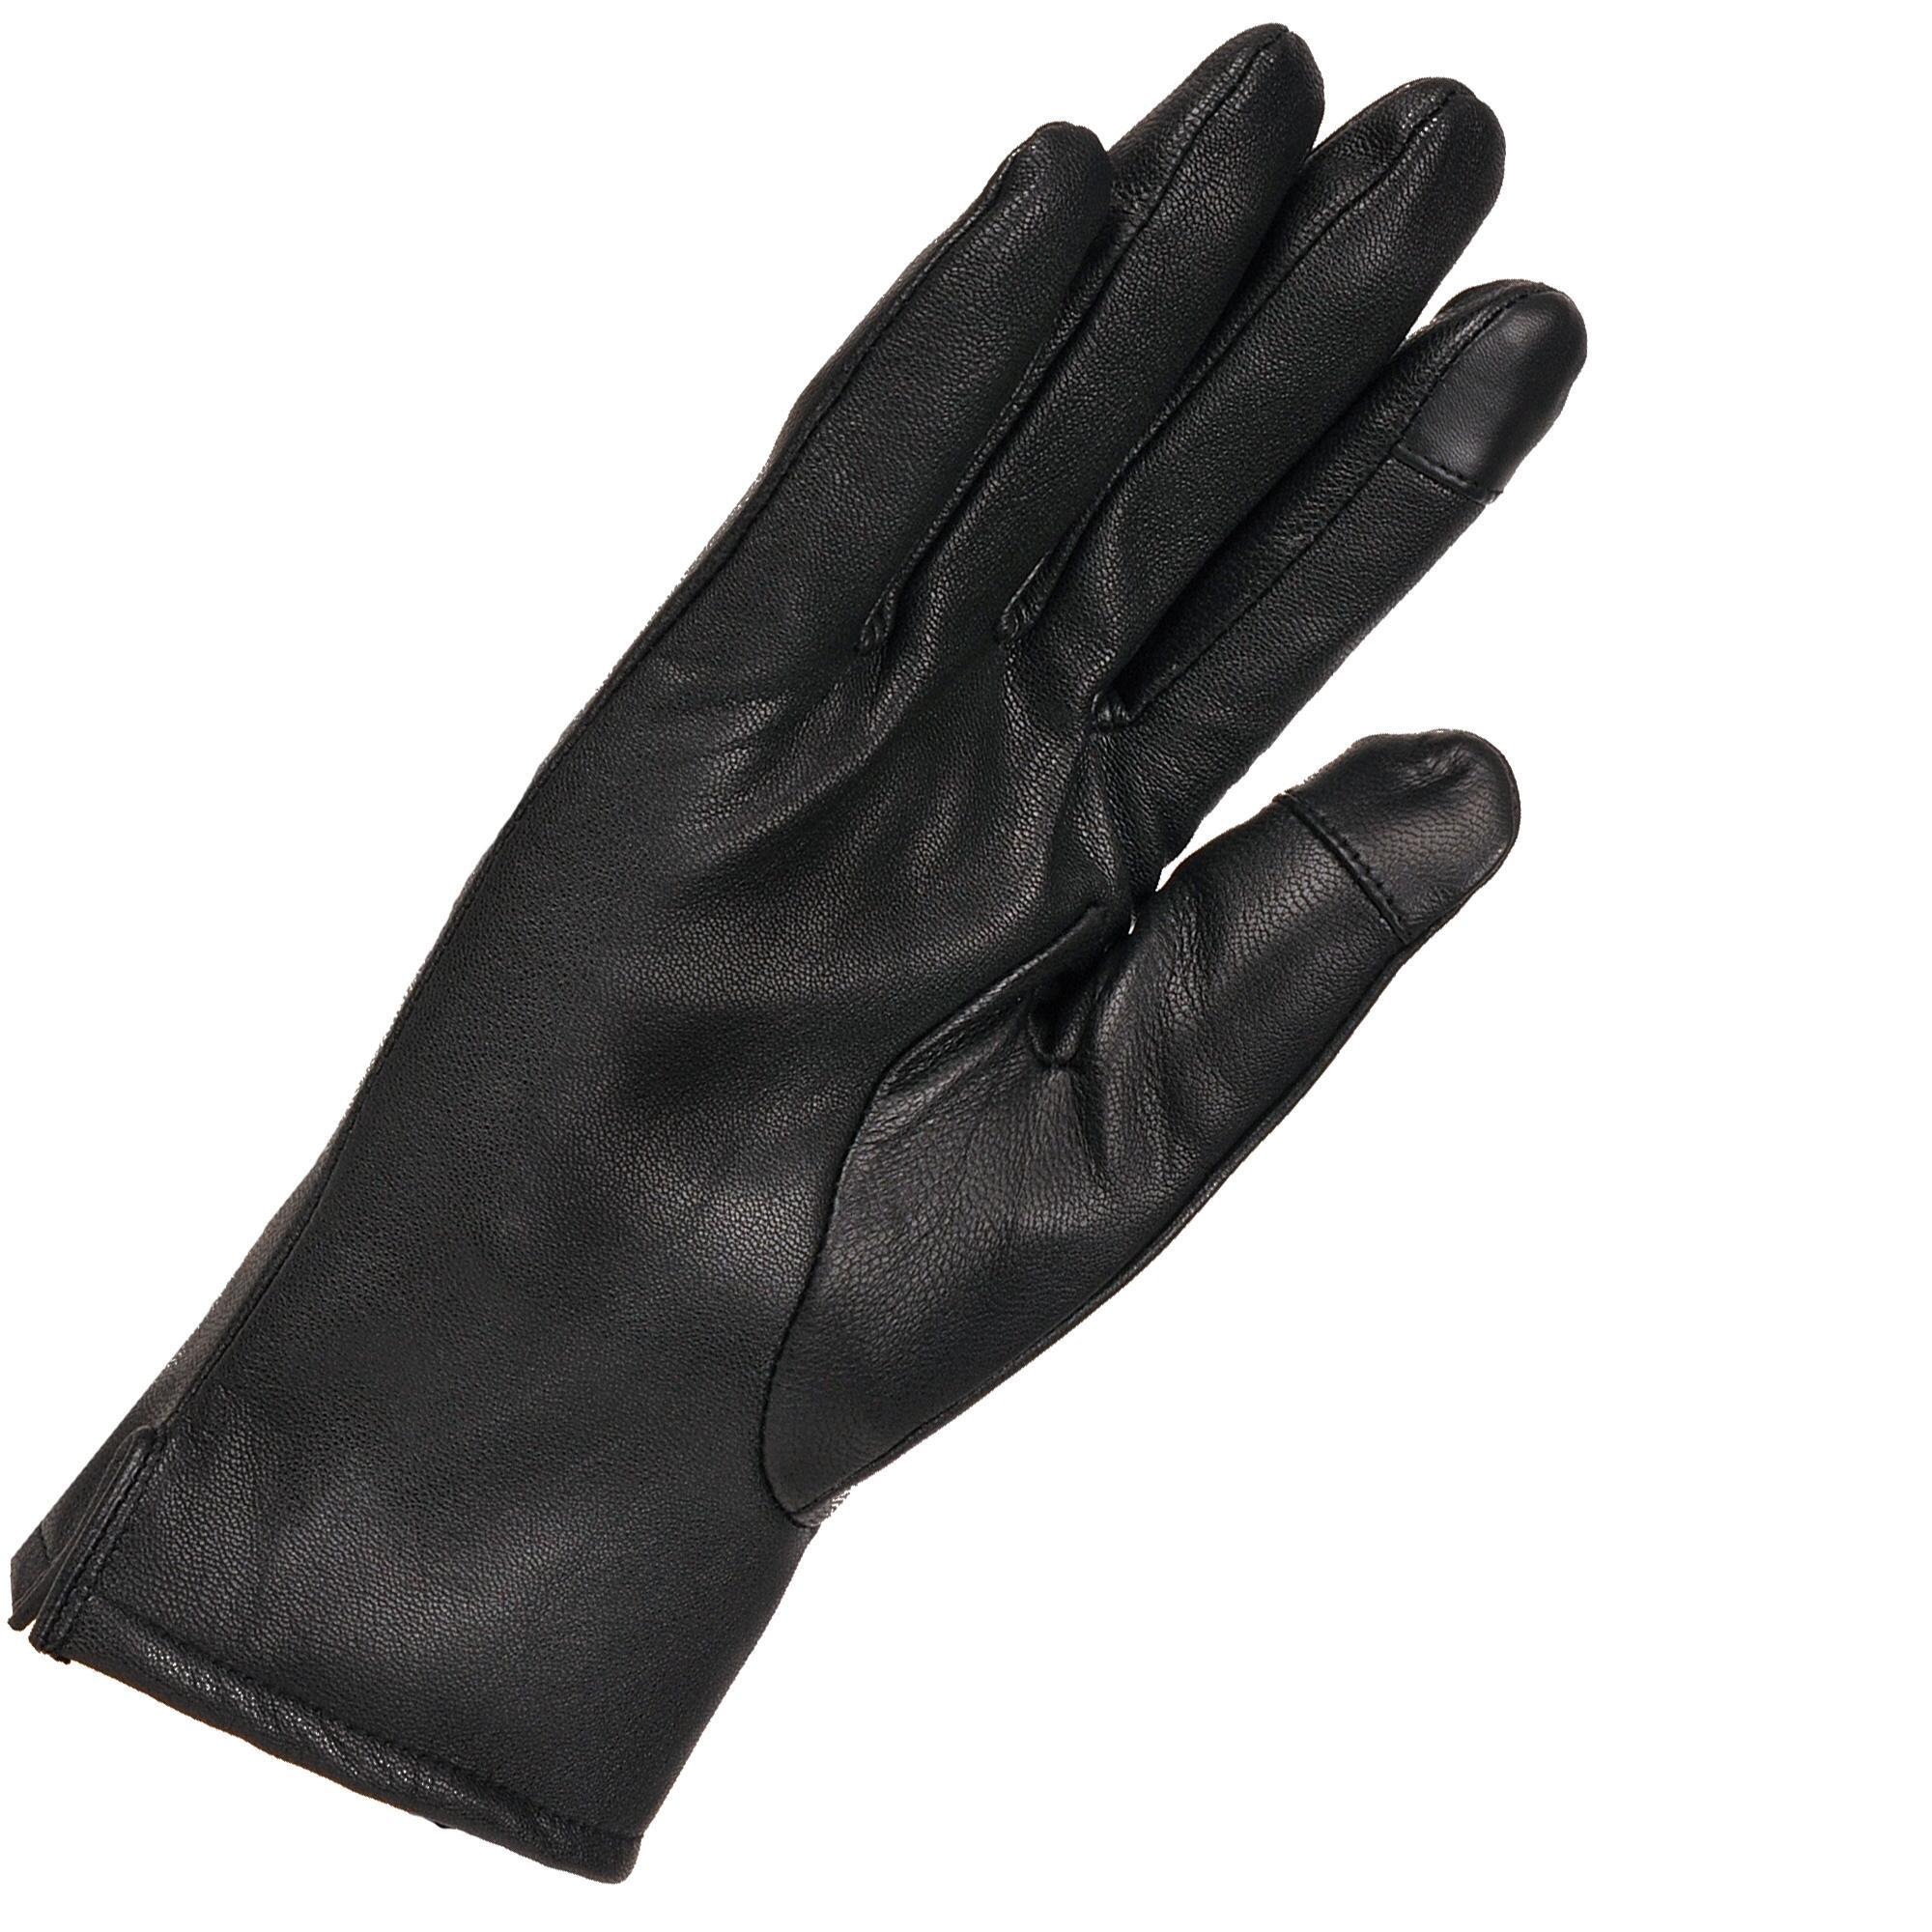 Leather work gloves with thinsulate lining - View Fullscreen